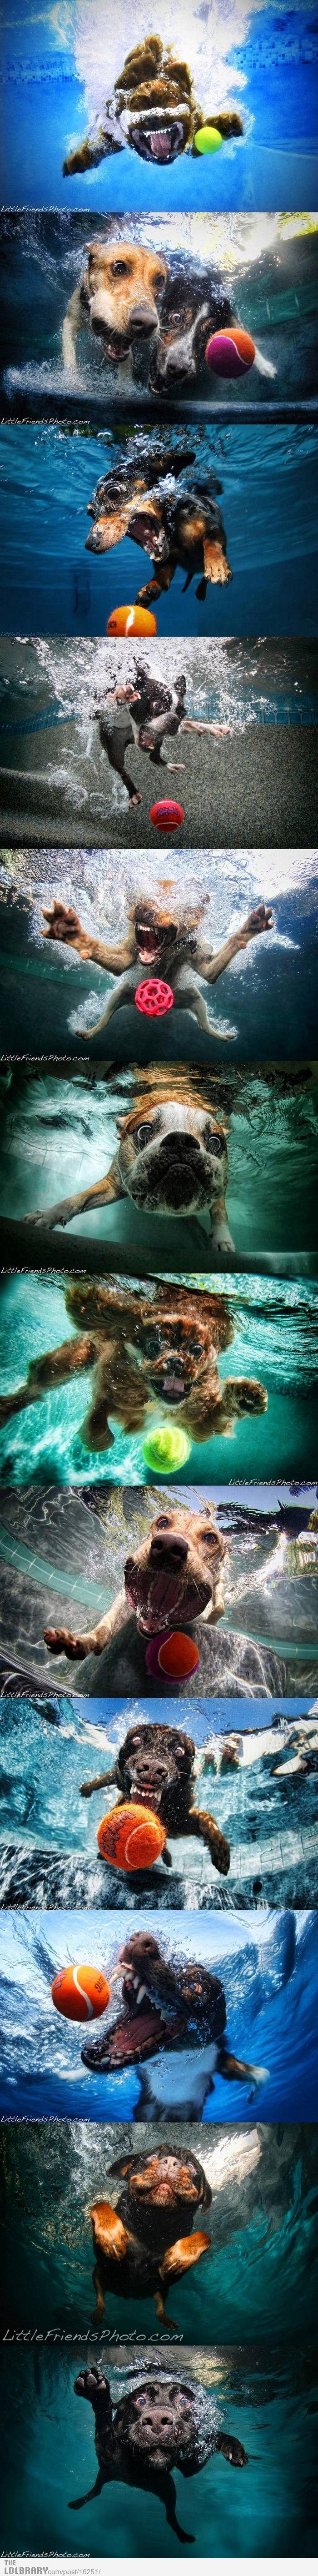 ahhhaha: Funny Dogs, Dogs Photography, Silly Dogs, Doggies, Puppys, Underwater Dogs, Dogs Pictures, So Funny, Dogs Faces